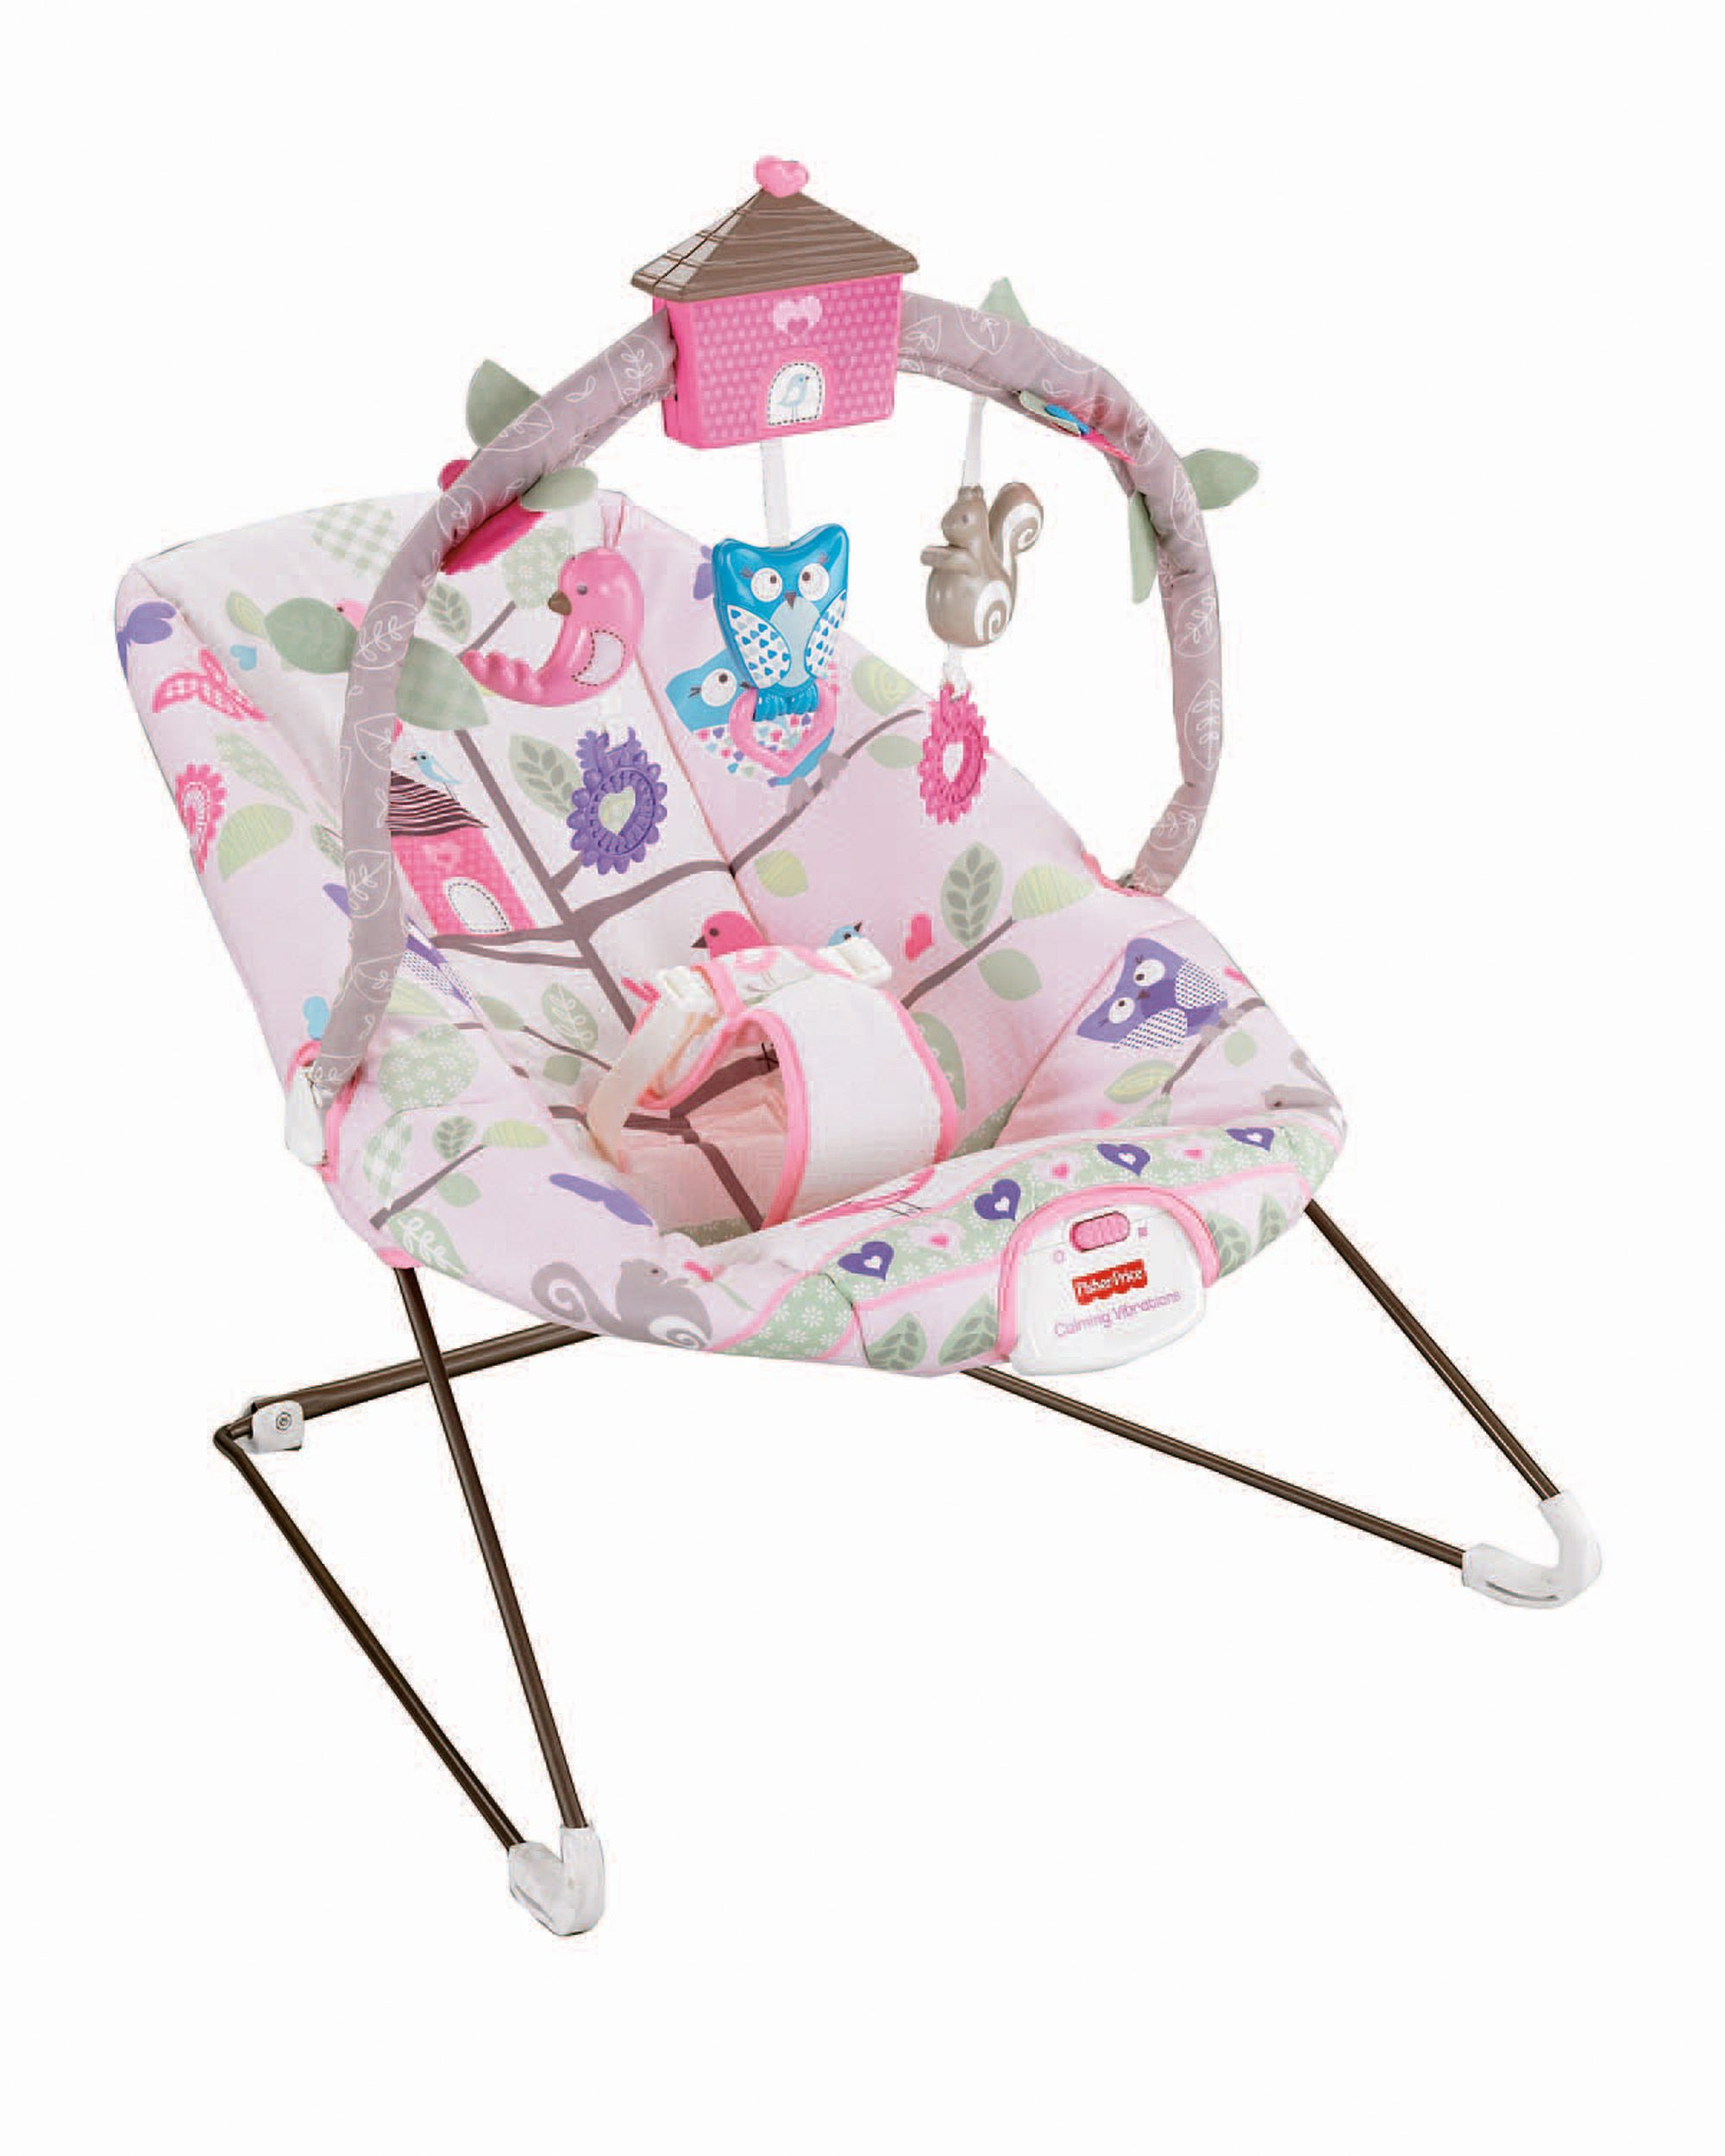 Fisher Price Tree Party Bouncer available online at